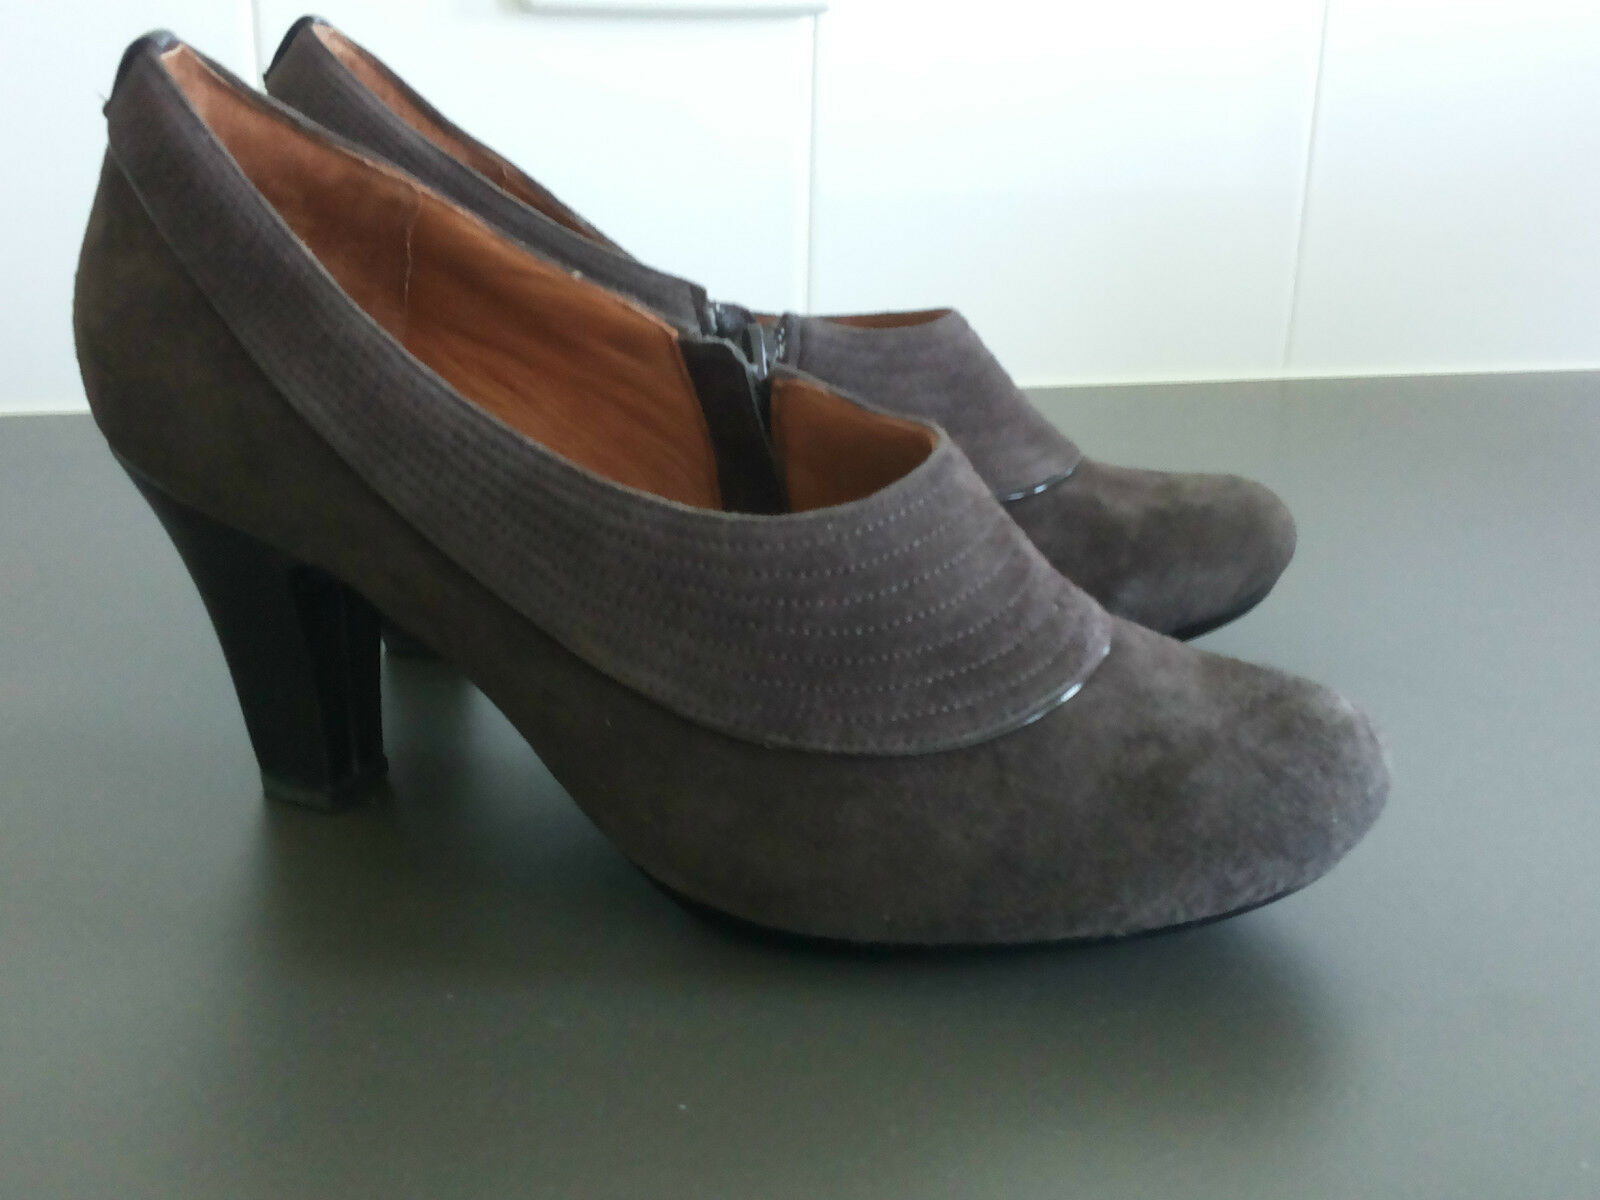 CLARKS ARTISAN COLLECTION SUEDE BOOTIE, SIZE 9 W BRAND NEW IN BOX!